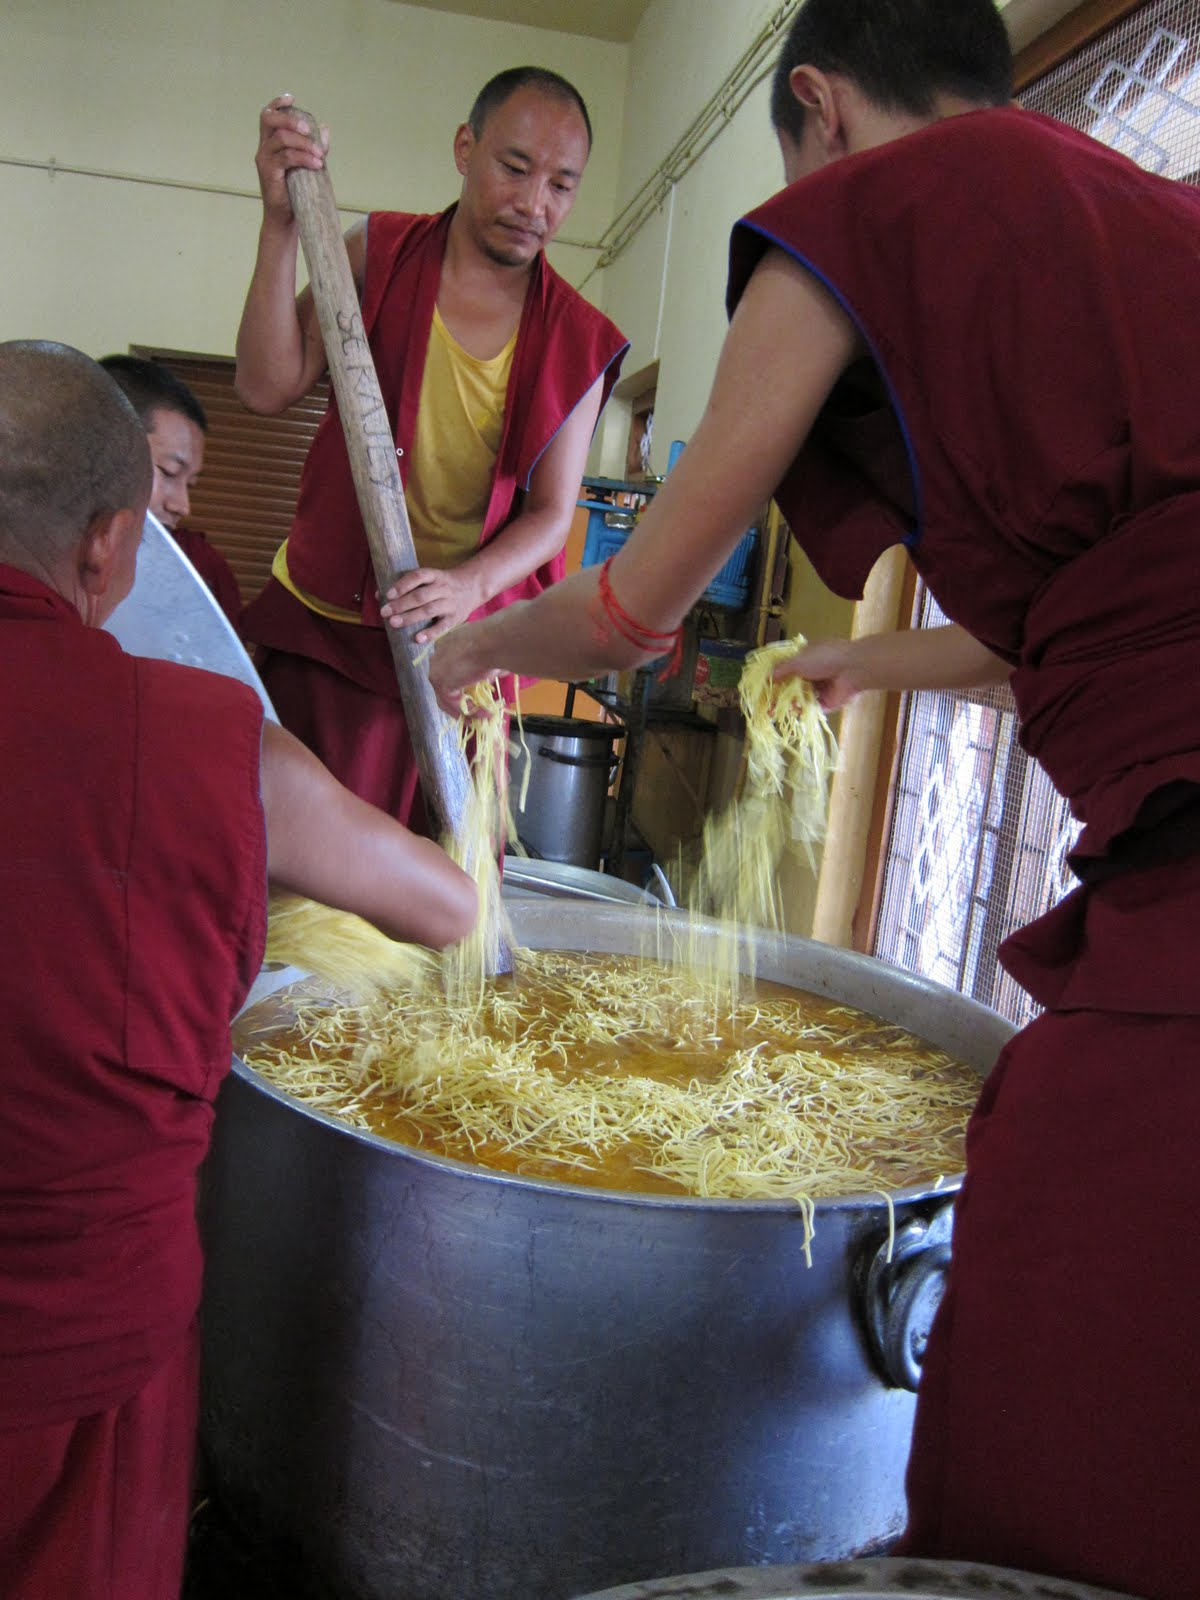 Cooking giant pots of pasta soup